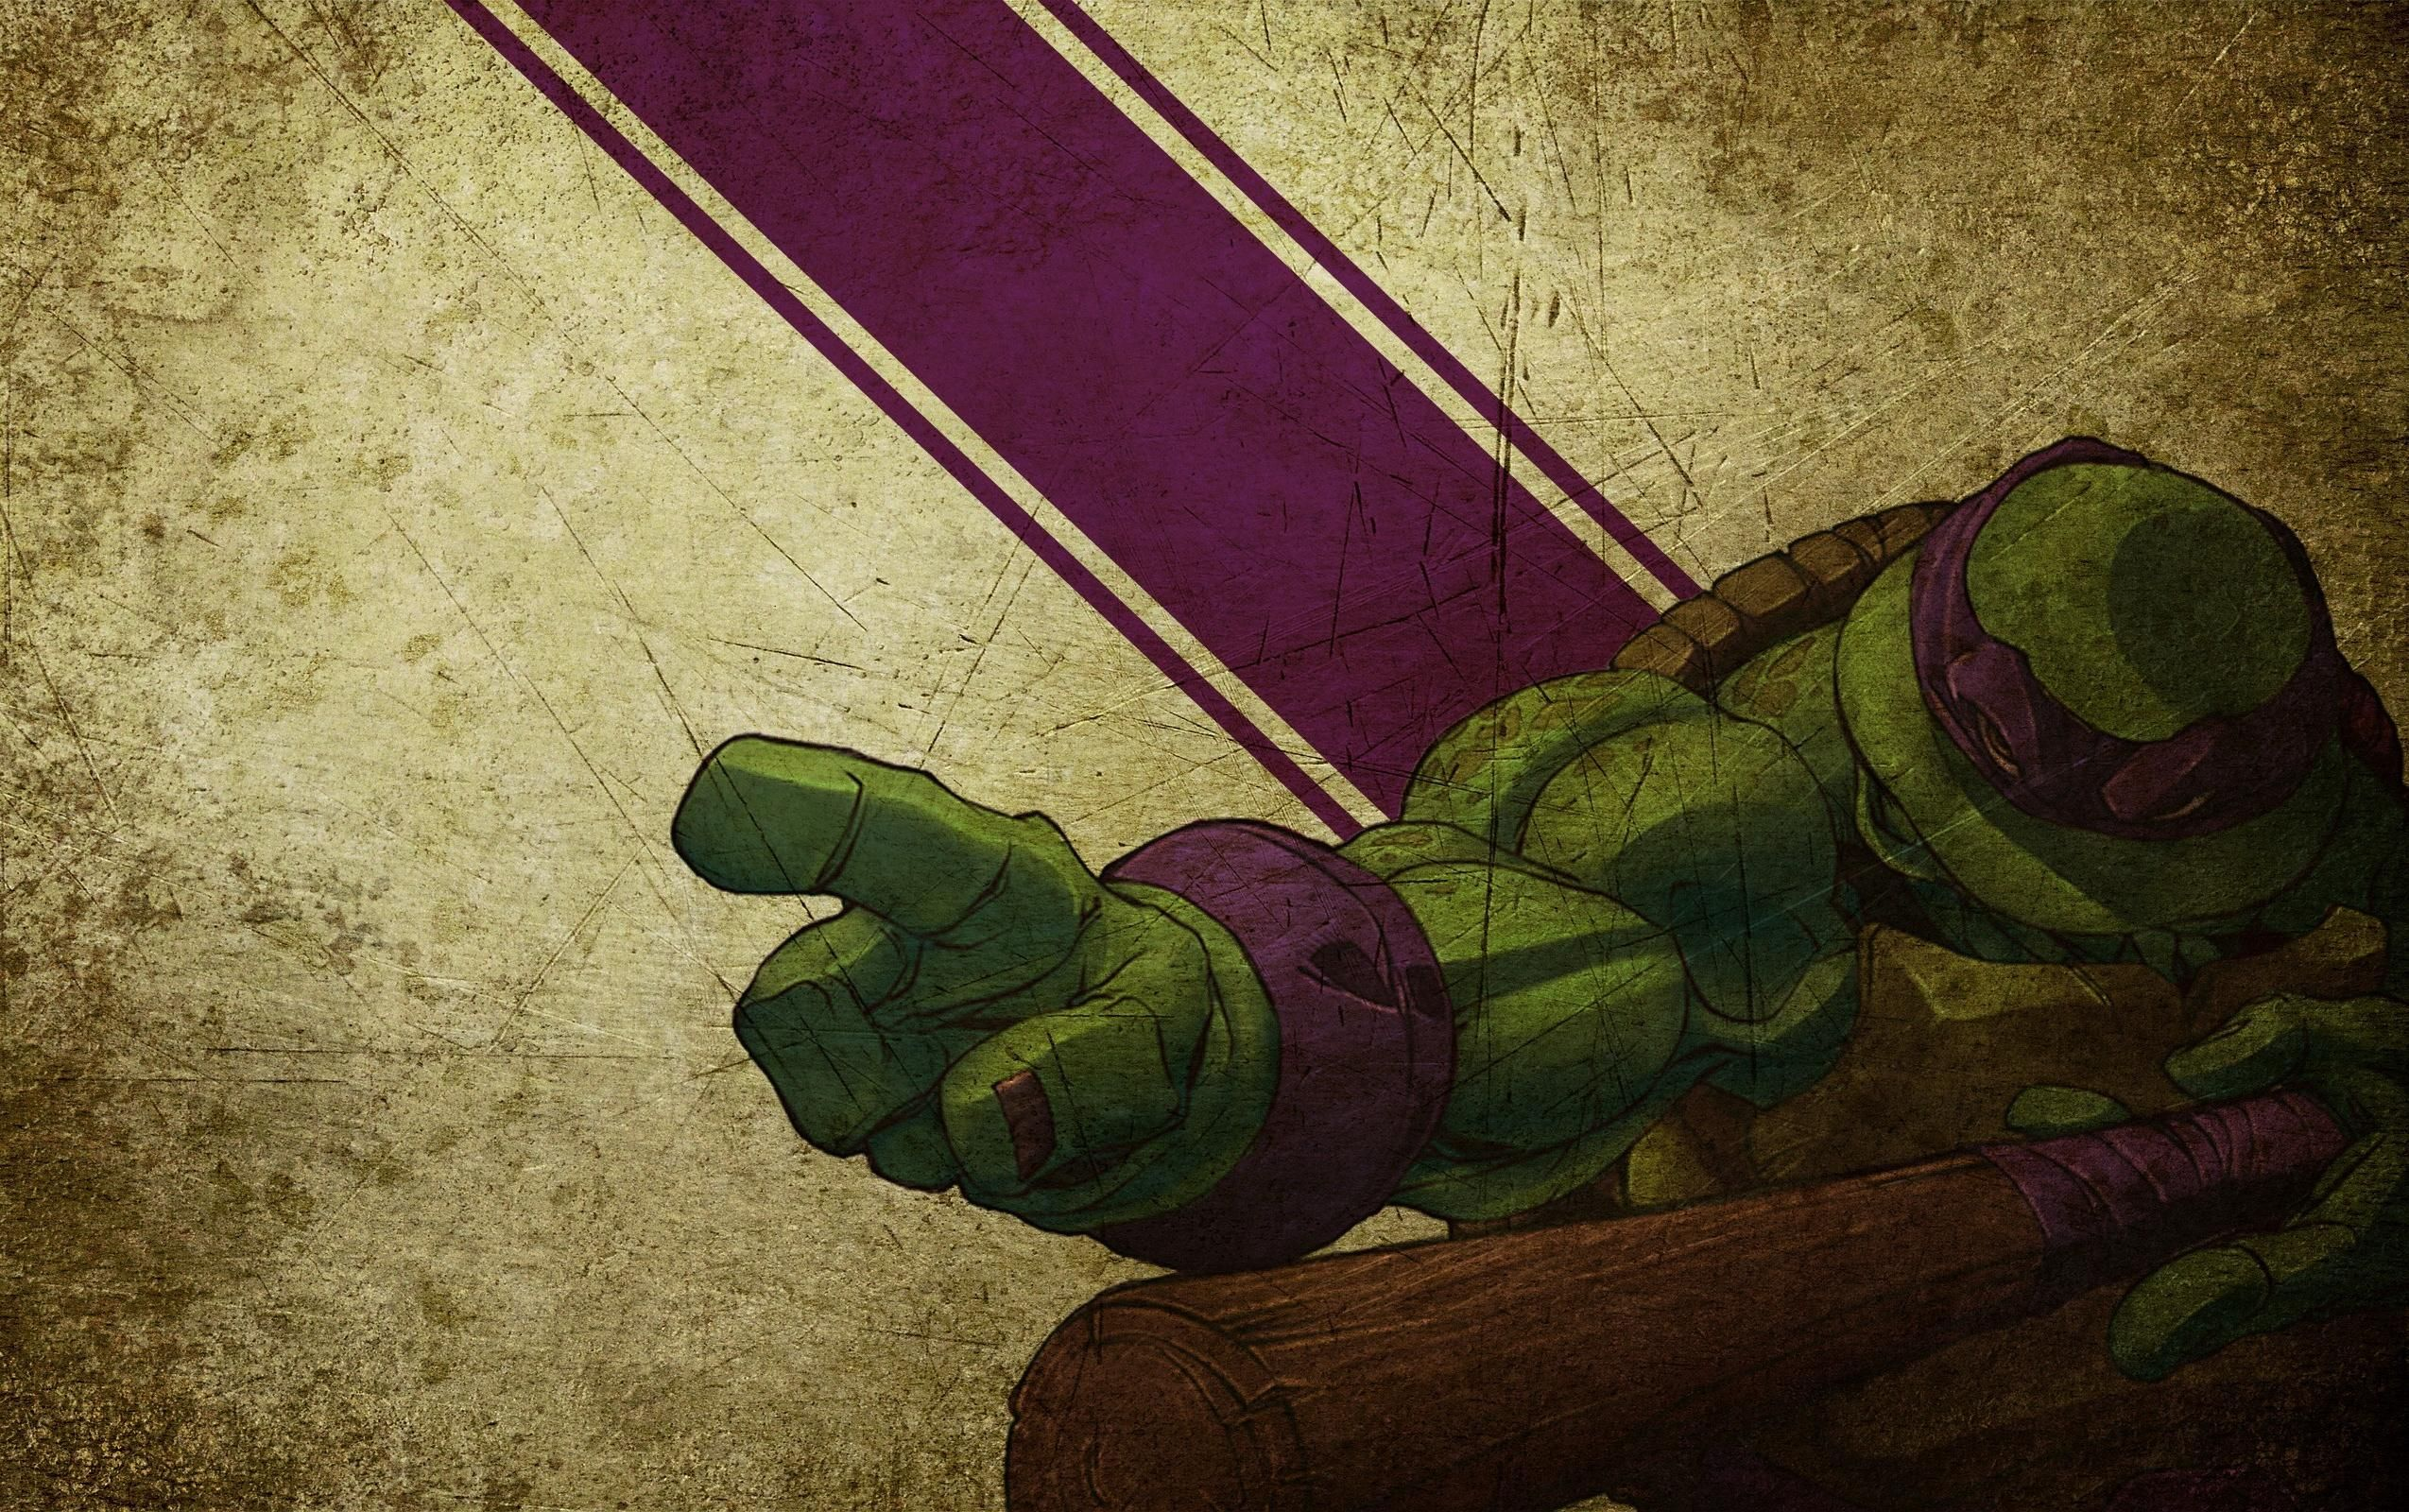 Tmnt Desktop Wallpapers Tmnt Wallpaper Turtle Background